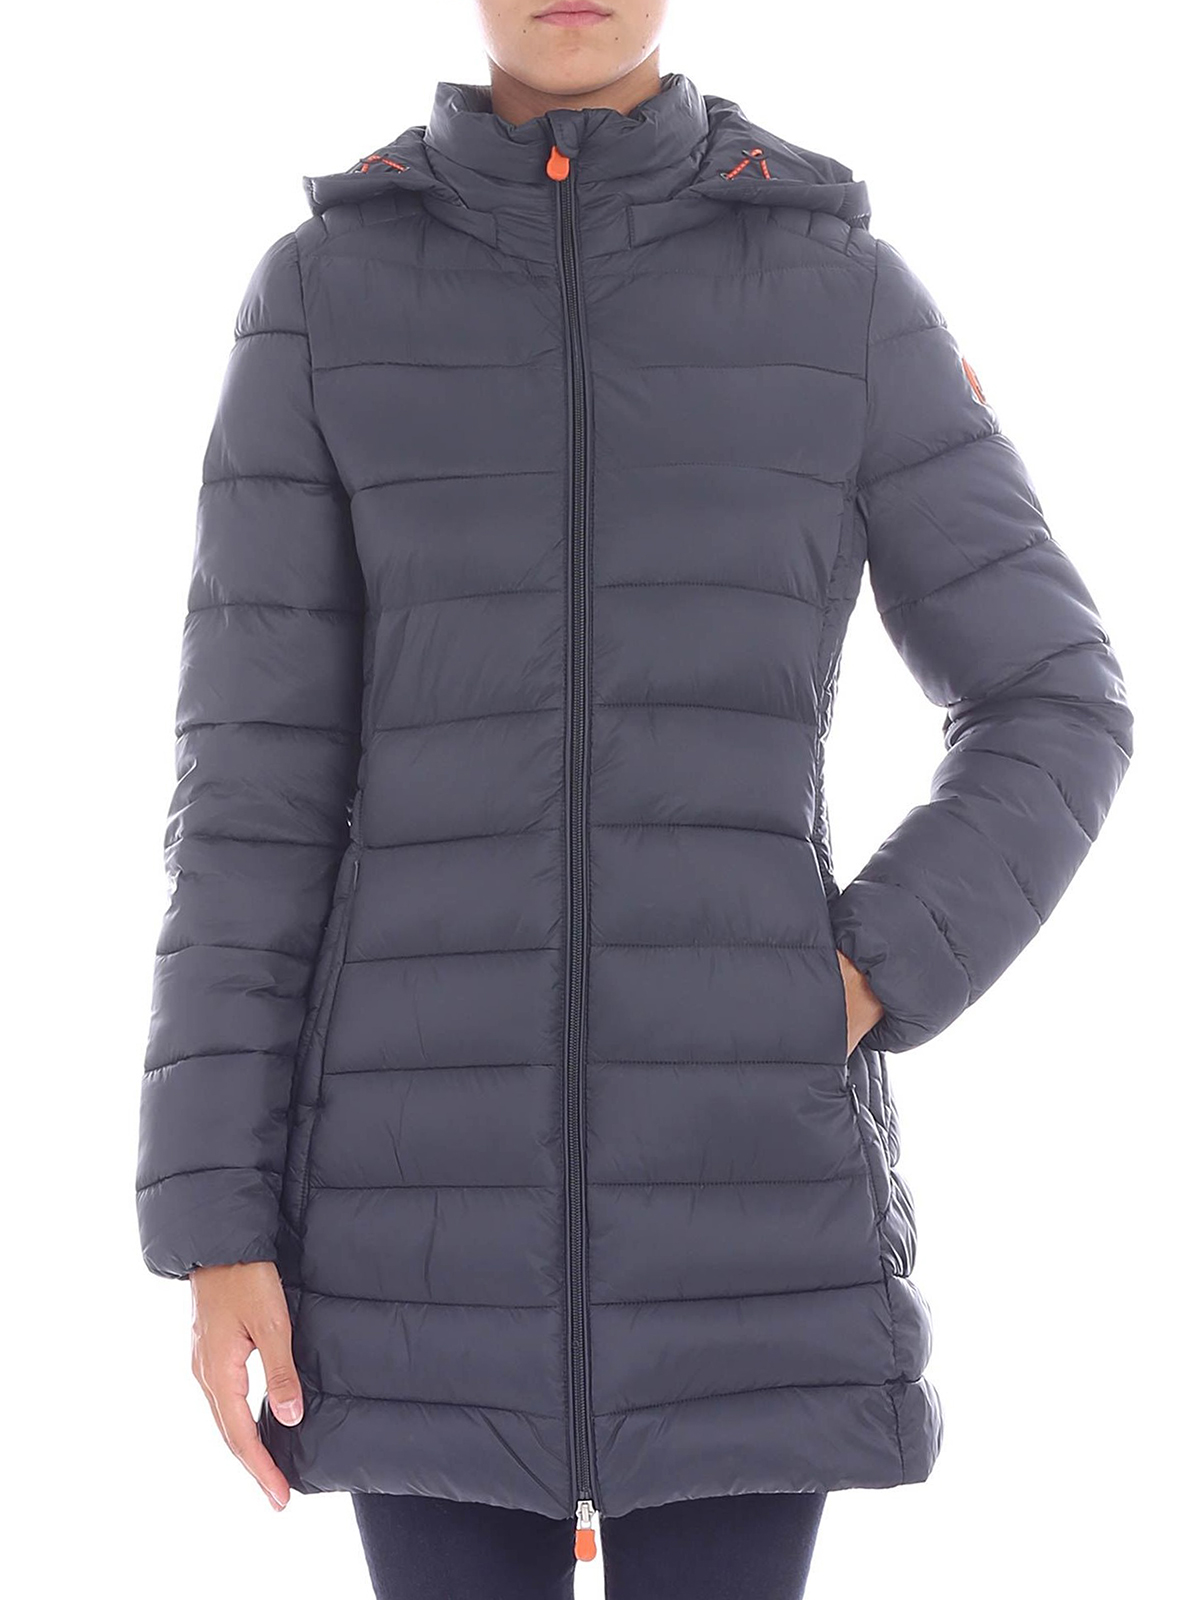 Padded Coat Nylon Save Shaped Duck Ikrix Giga7 The Coats Quilted BtqBvHPw